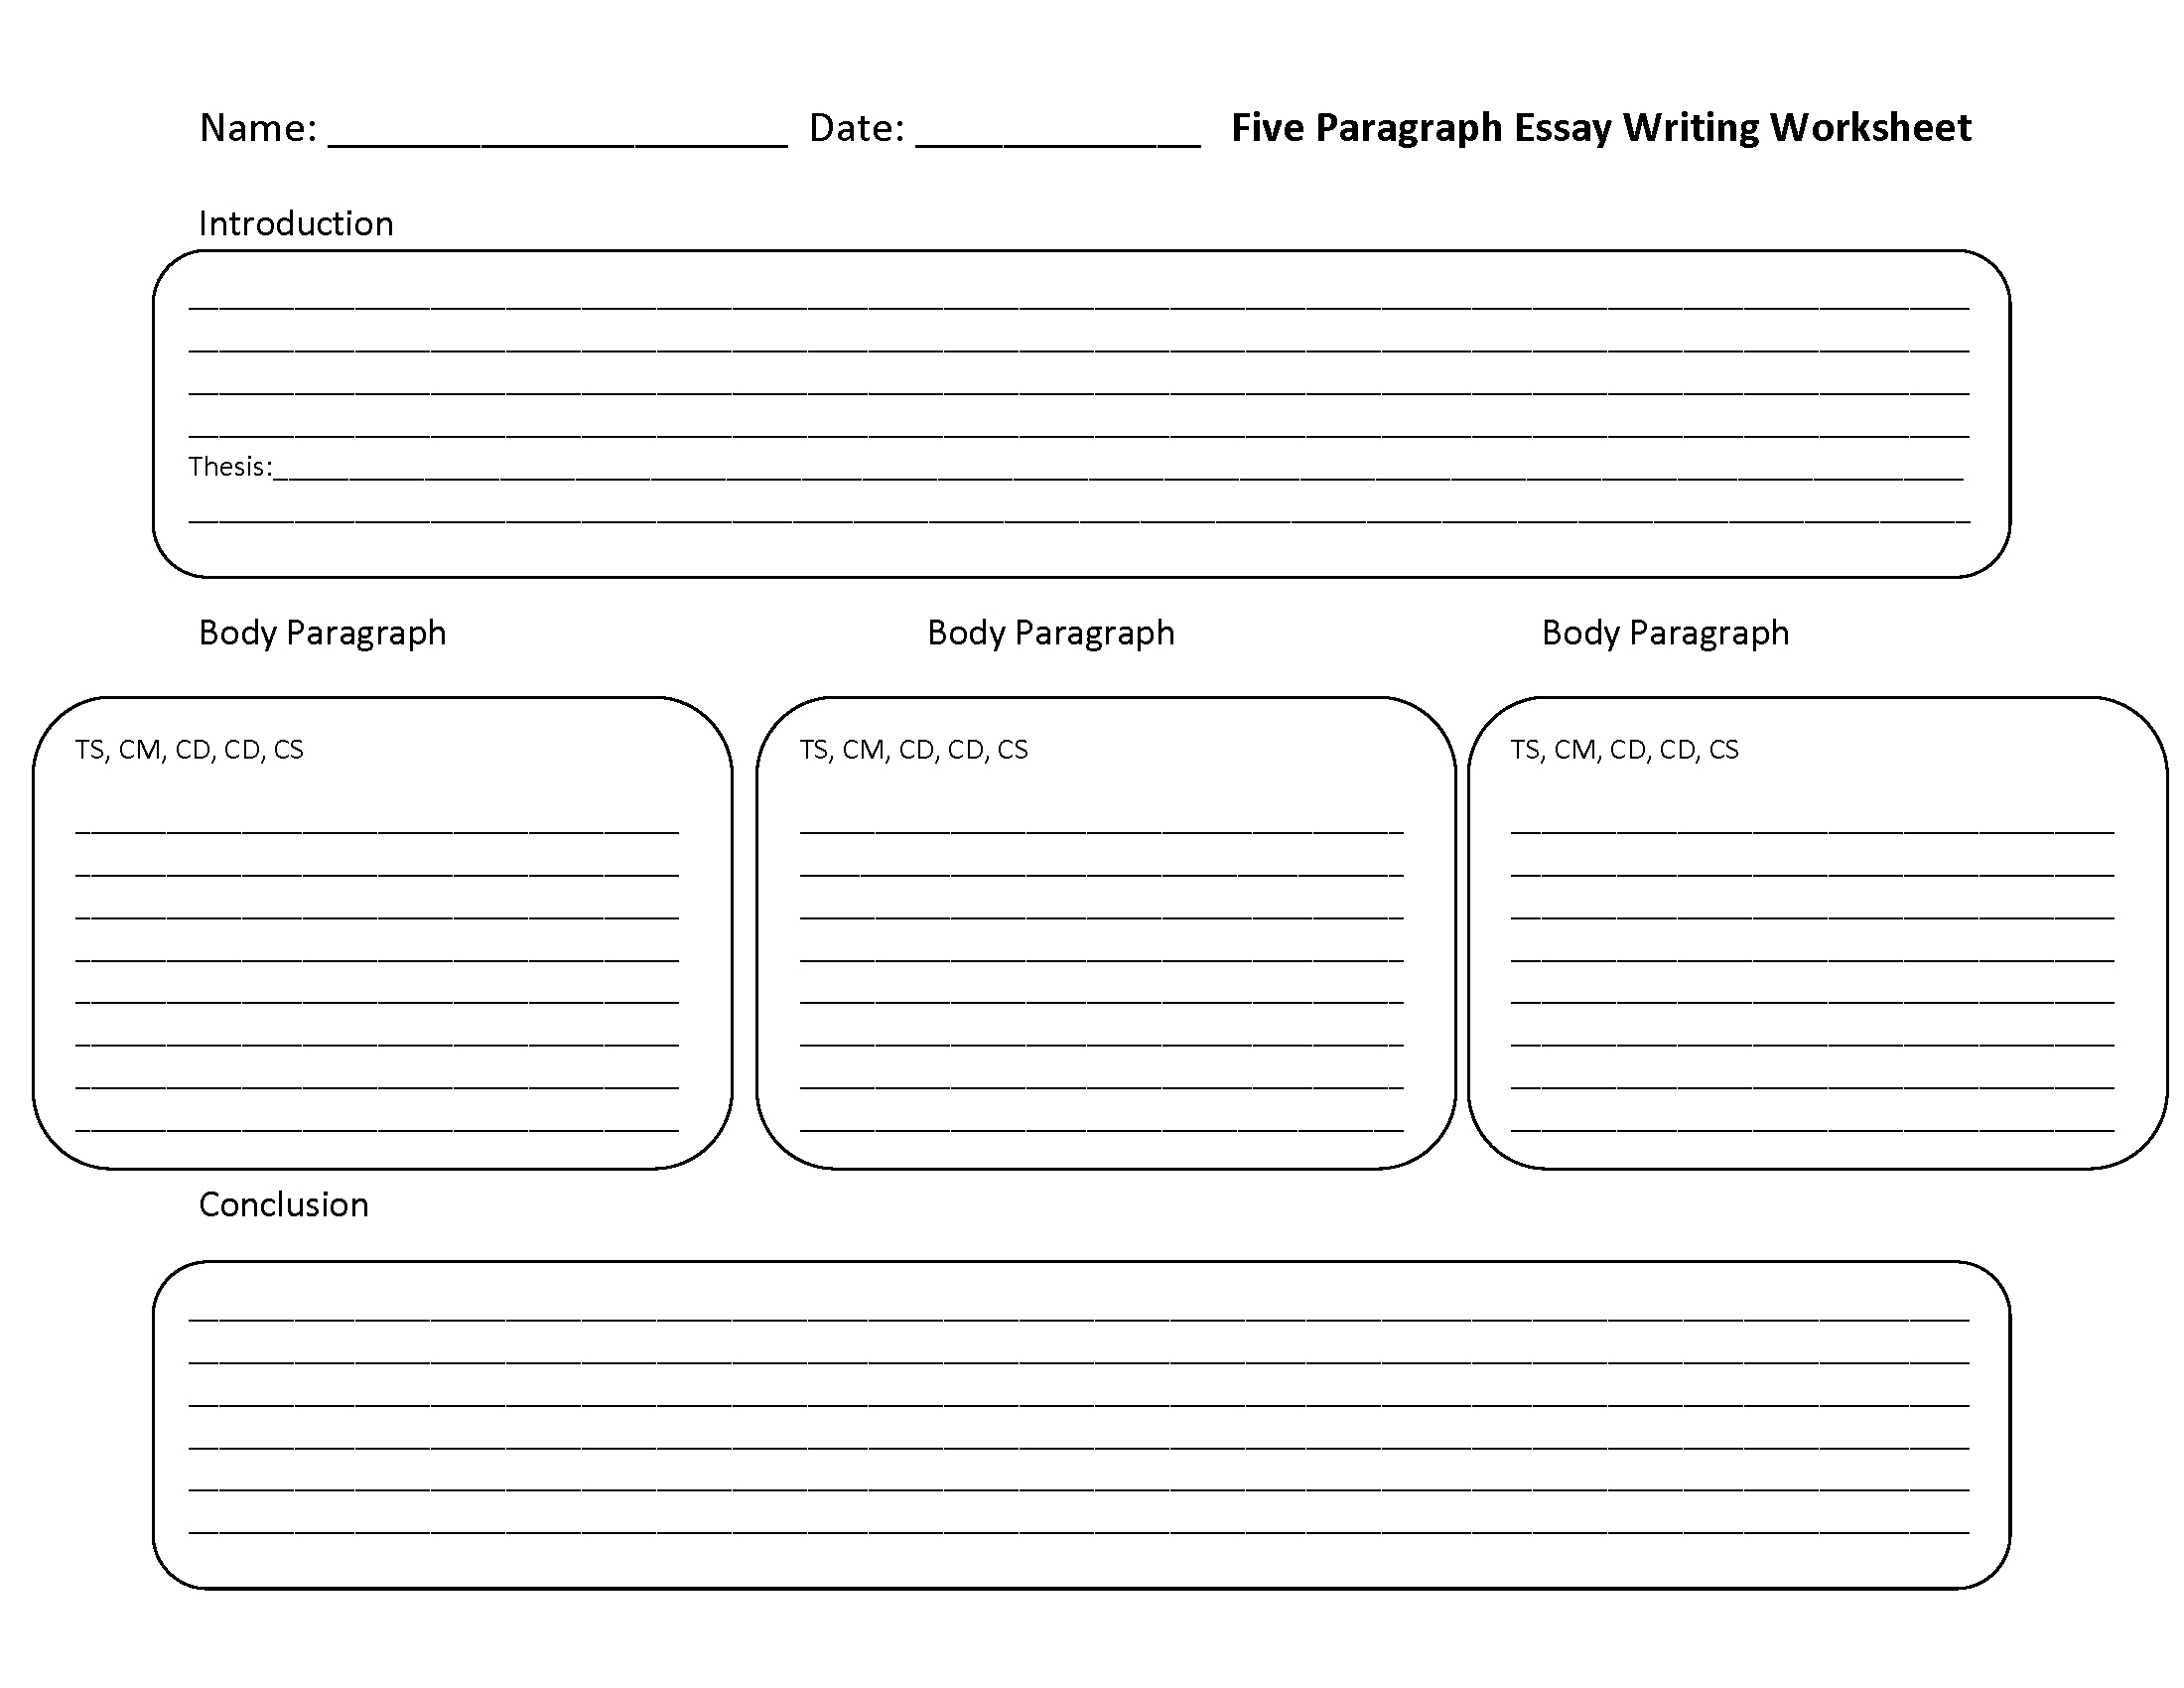 006 Essay Graphic Organizer Paragraph Poemsrom Co For Writing Literary Essays Worksheets Throughout Organizers College Informative Free Persuasive Best Descriptive Incredible Narrative Pdf Middle School 5th Grade Full